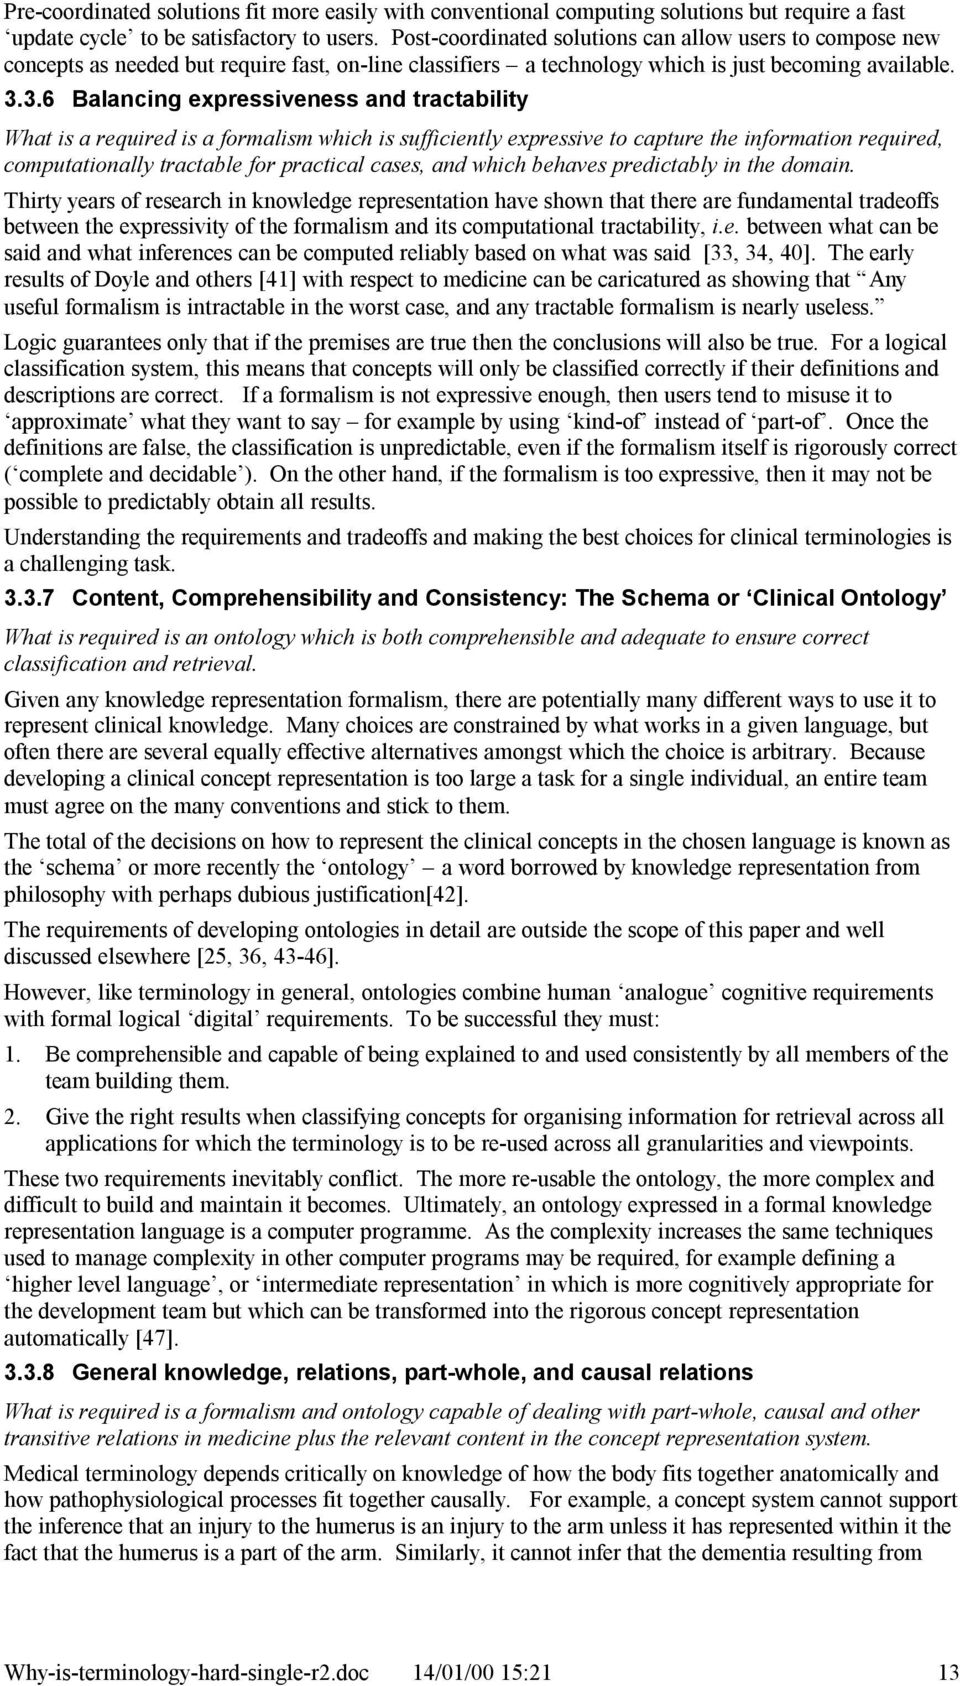 3.6 Balancing expressiveness and tractability What is a required is a formalism which is sufficiently expressive to capture the information required, computationally tractable for practical cases,